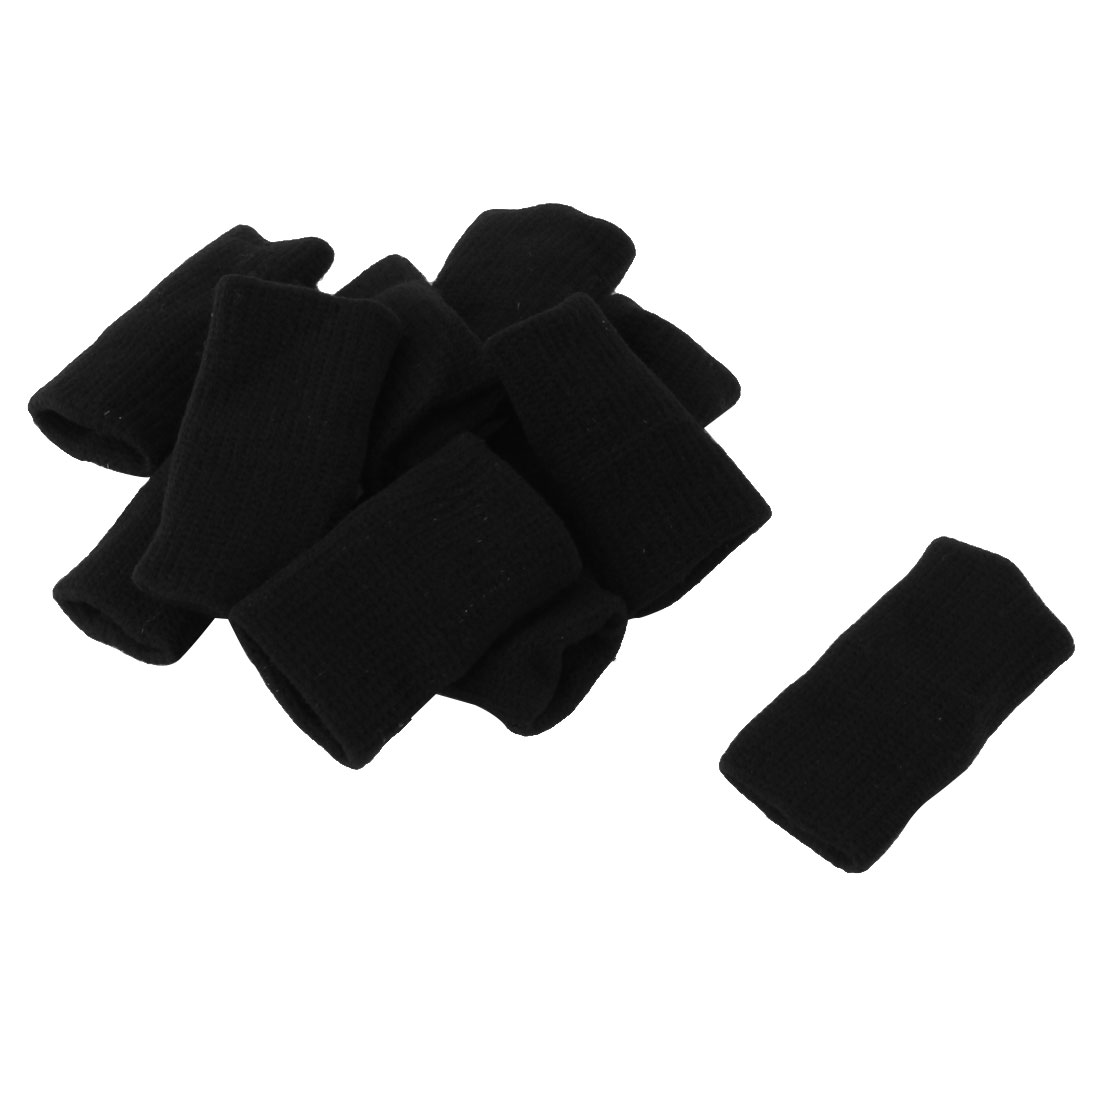 Black Sports Basketball Fitness Neoprene Finger Cover 10 Pcs